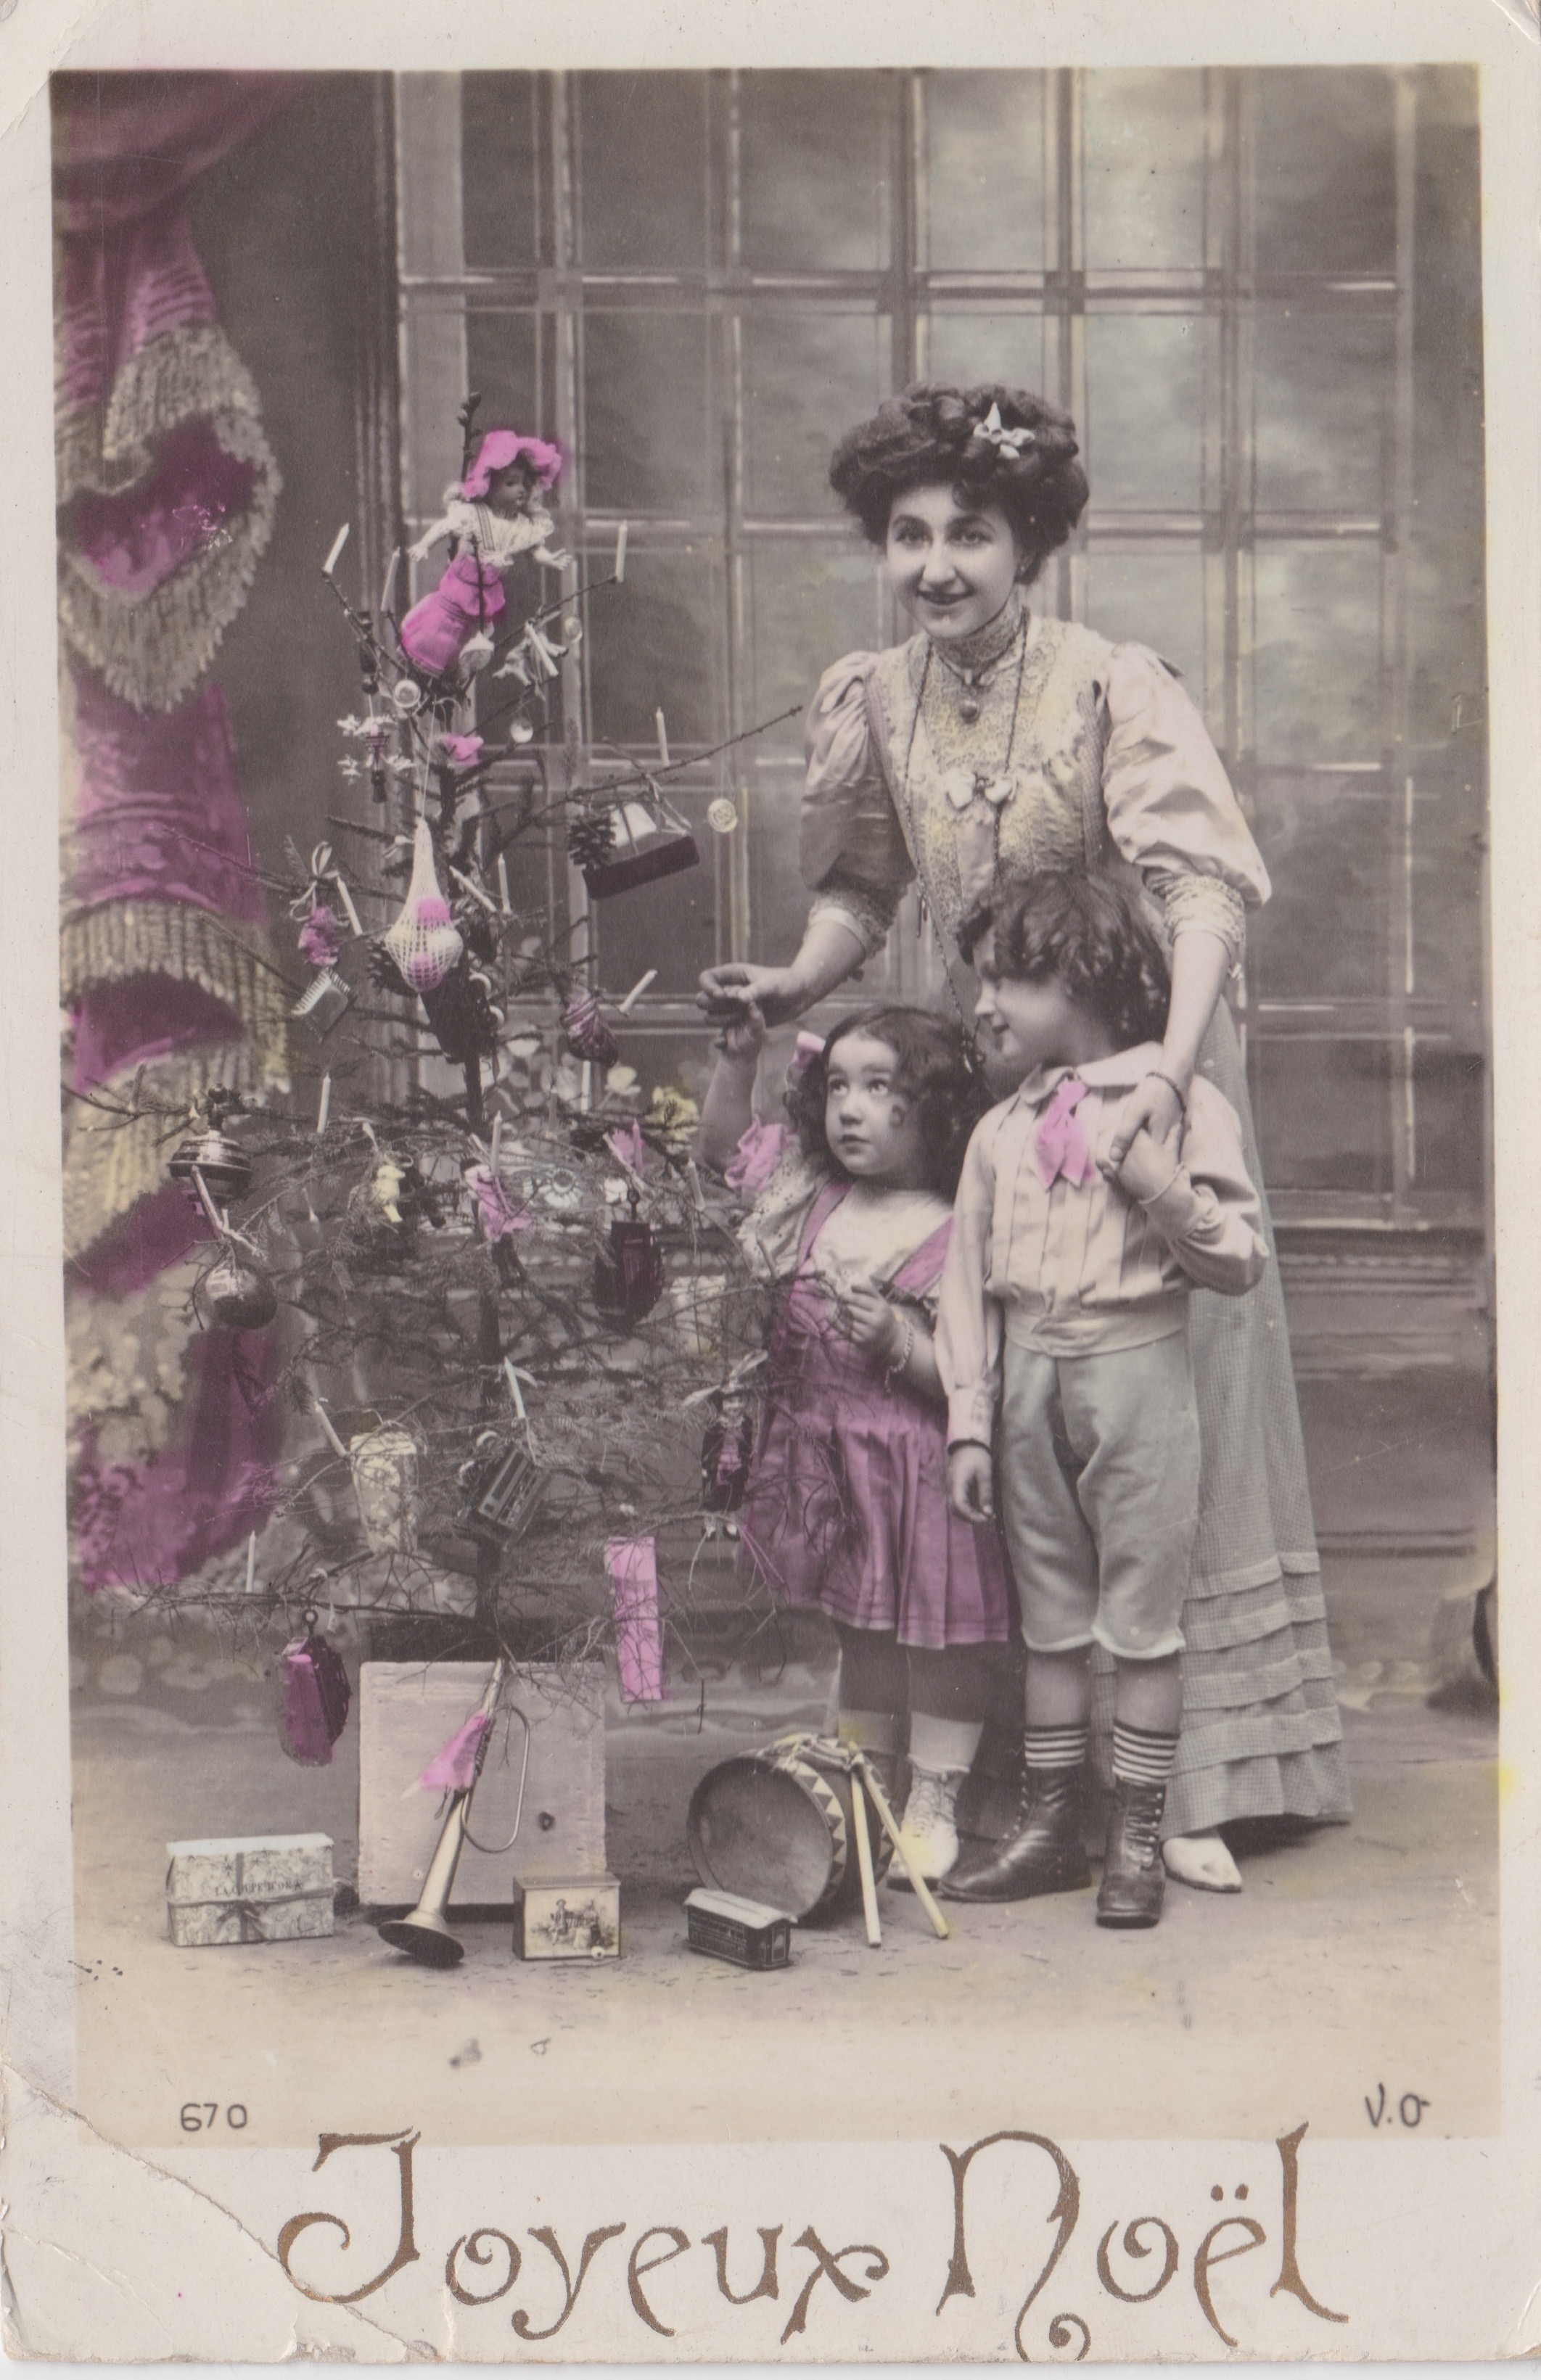 Carte Postale Dec 22 date unknown to Miss Watts Reddrum Cottage Surrey 'To Phoebe with love & good wishes'